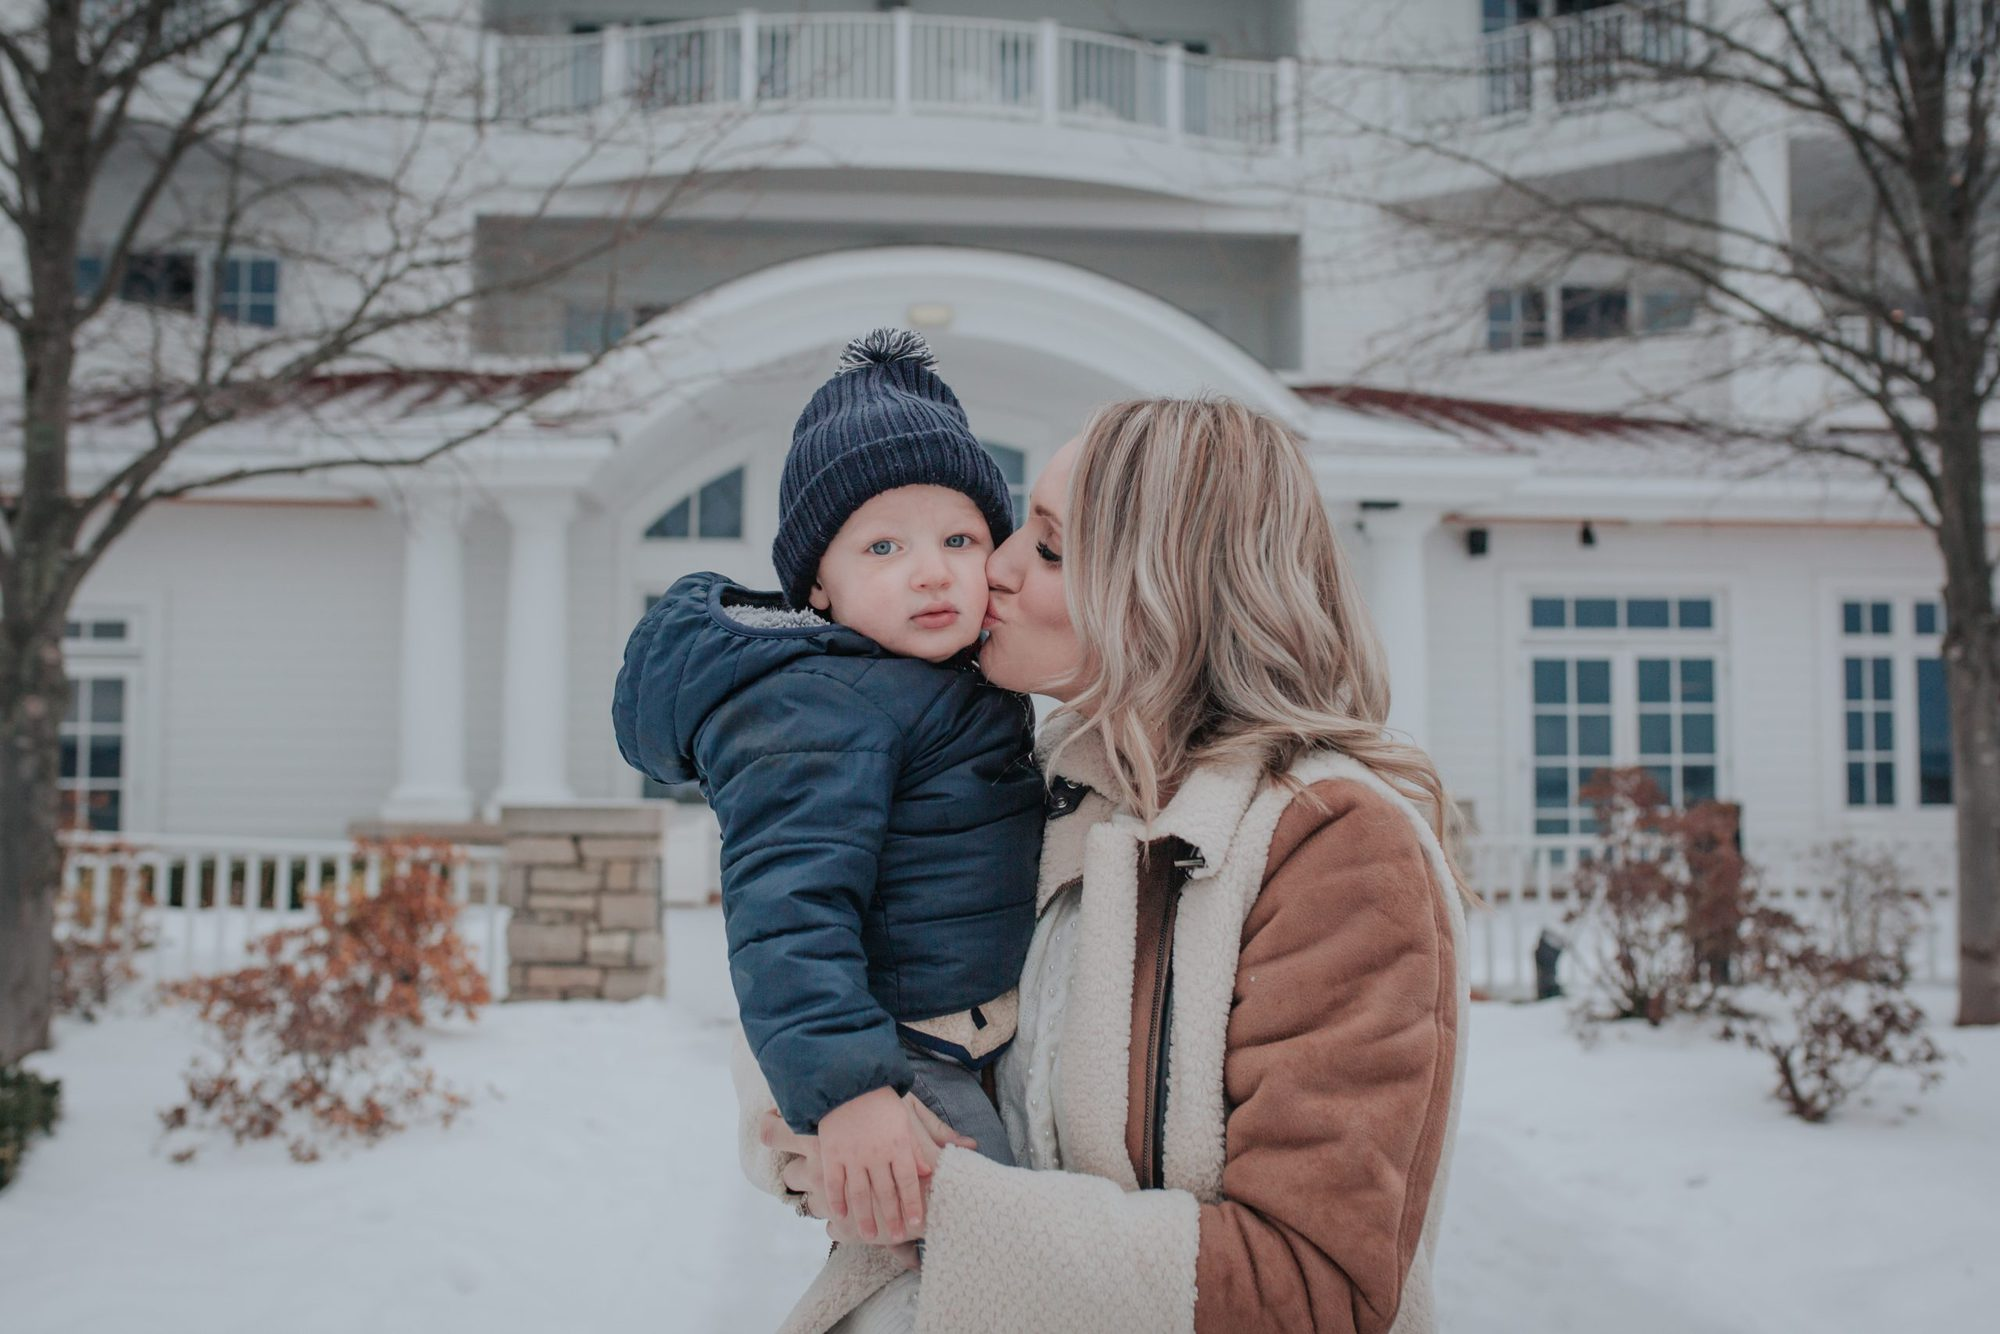 mom holding toddler son and kissing his cheek |Flu Vaccine Benefits by popular Michigan lifestyle blog, The House of Navy: image of a mom holding her young boy outside in the snow and kissing him on the cheek.